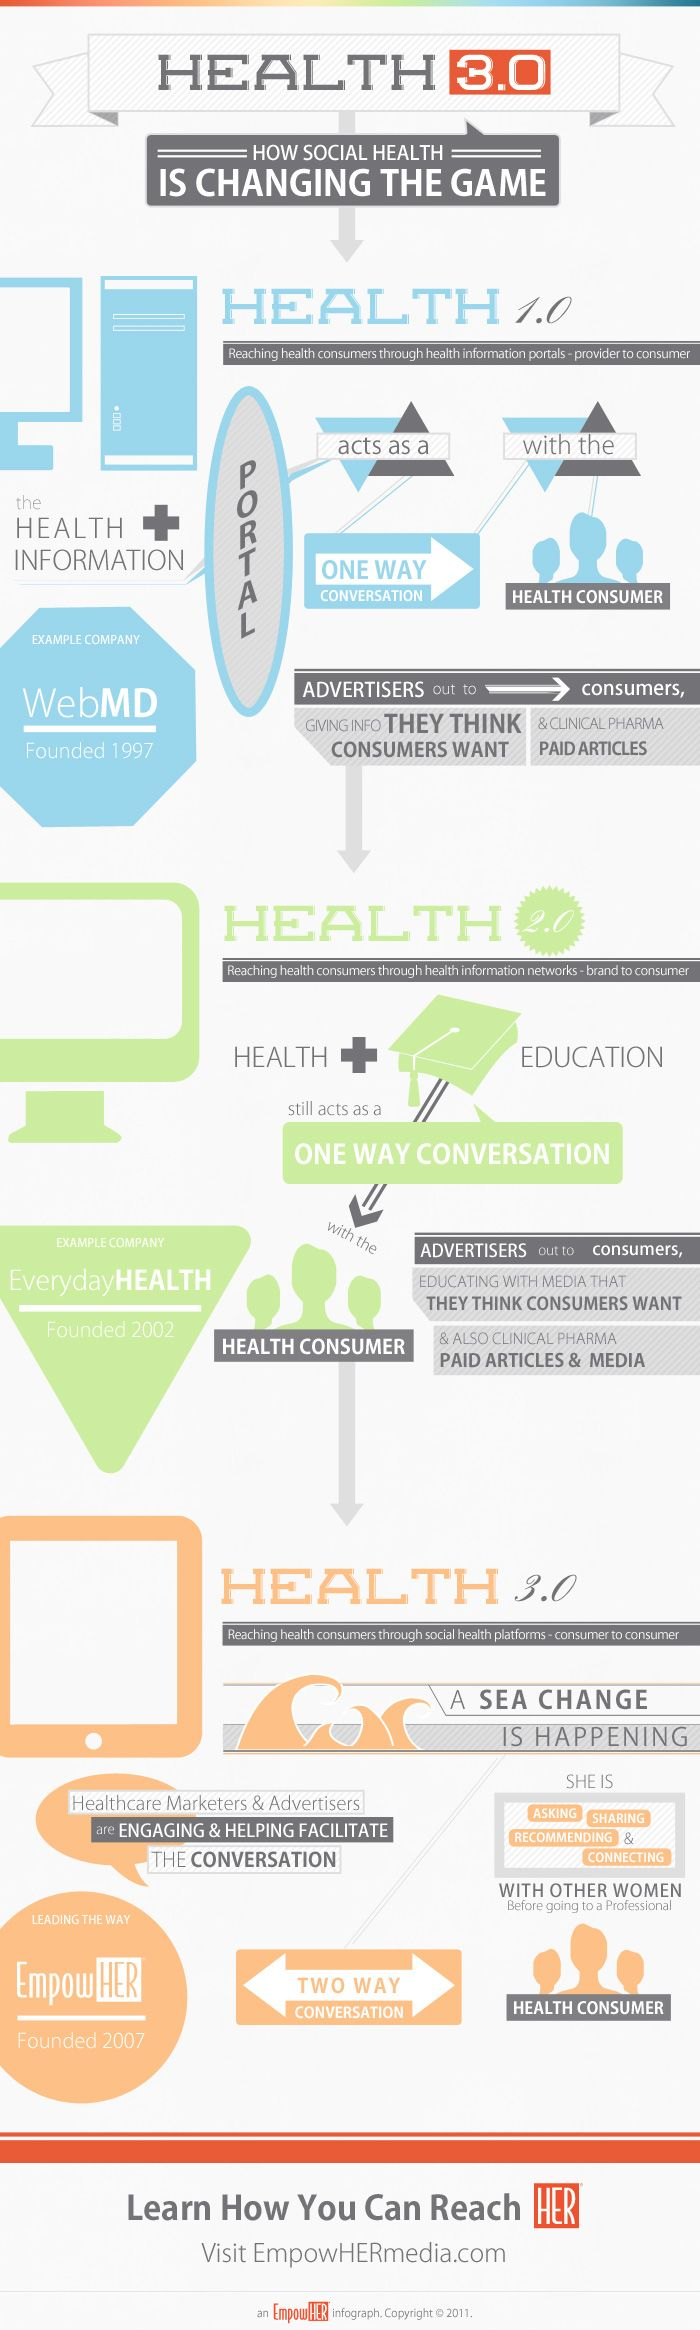 Health marketer? Must know information about the changing landscape for reaching the consumers you want to reach. And...how!